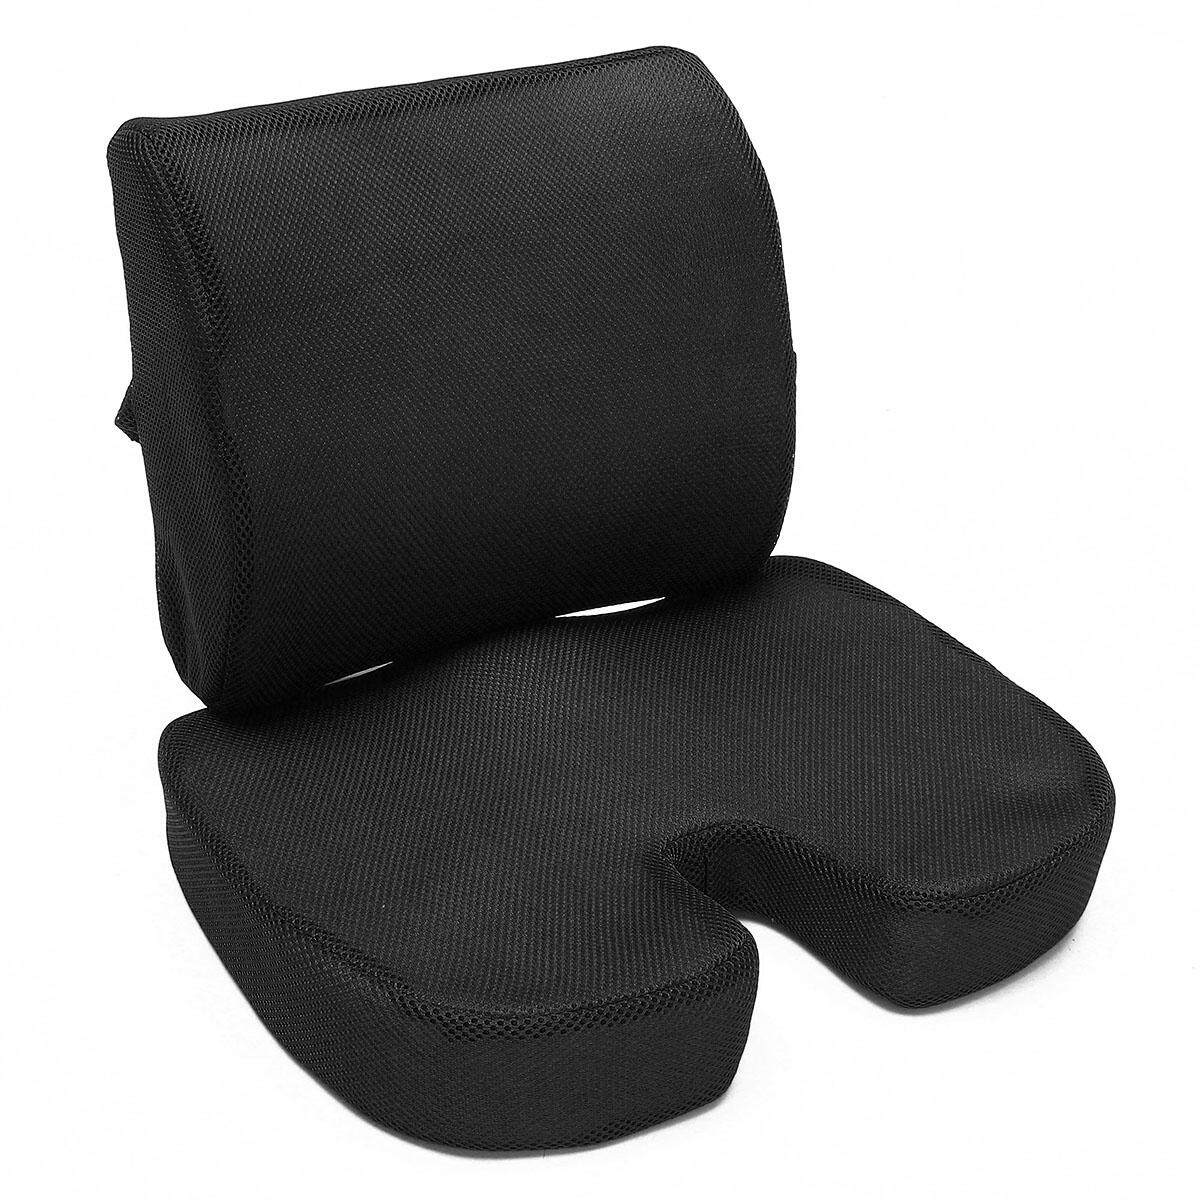 Orthopedic Seat Cushion Bundle – Tailbone & Lumbar Support For Office Chairblack By Glimmer.